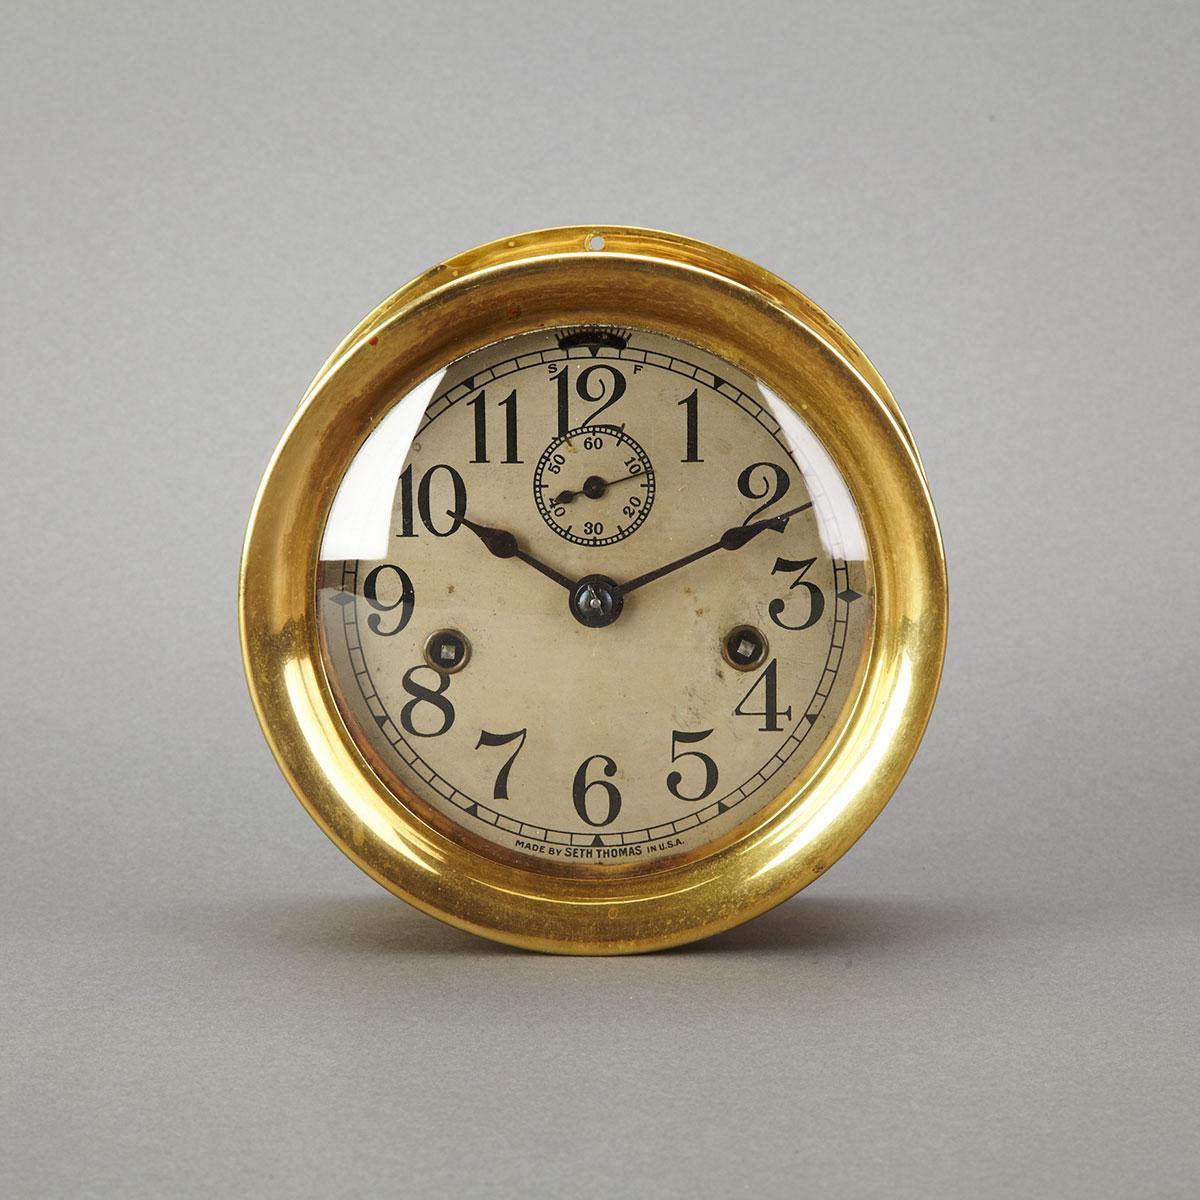 Seth Thomas Brass Marine Chronometer, 19th century